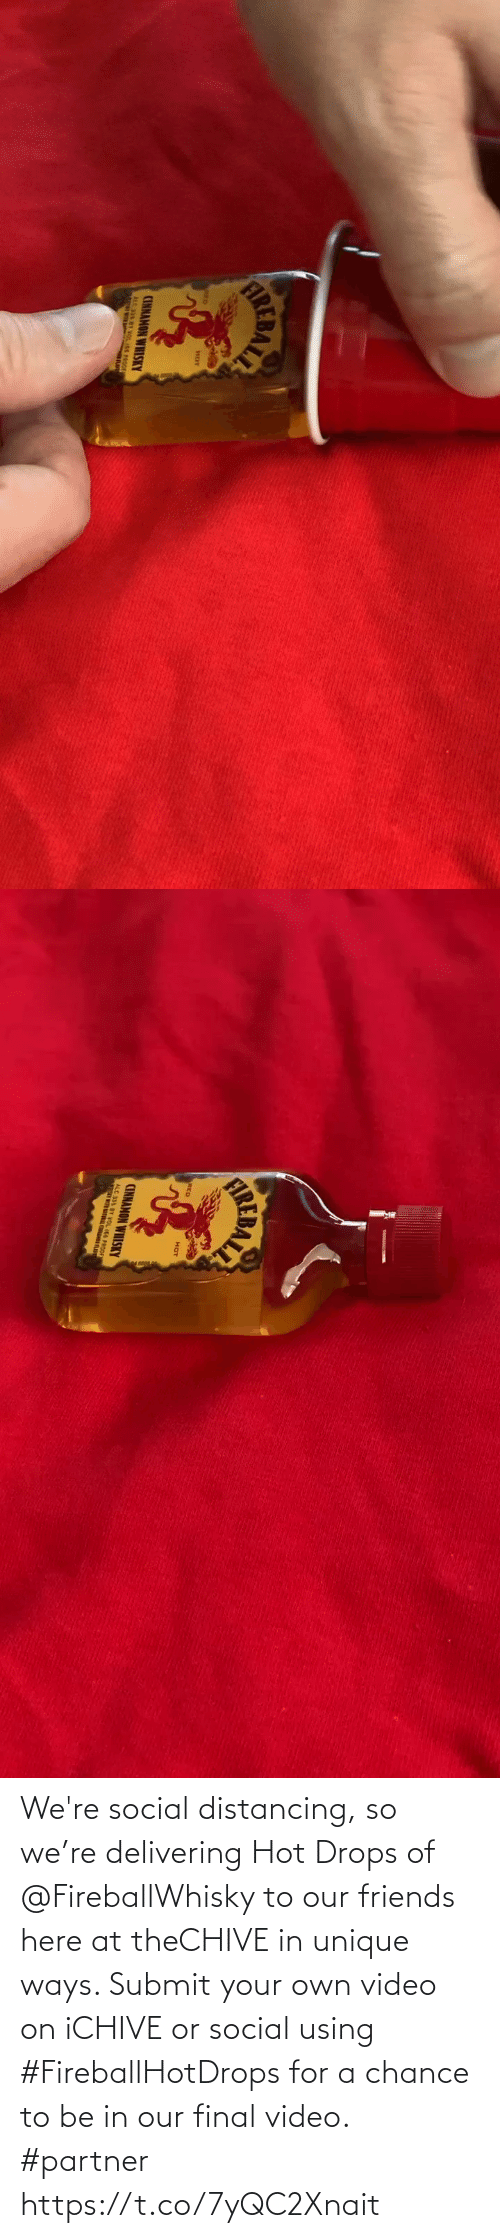 Drops: We're social distancing, so we're delivering Hot Drops of @FireballWhisky to our friends here at theCHIVE in unique ways. Submit your own video on iCHIVE or social using #FireballHotDrops for a chance to be in our final video. #partner https://t.co/7yQC2Xnait